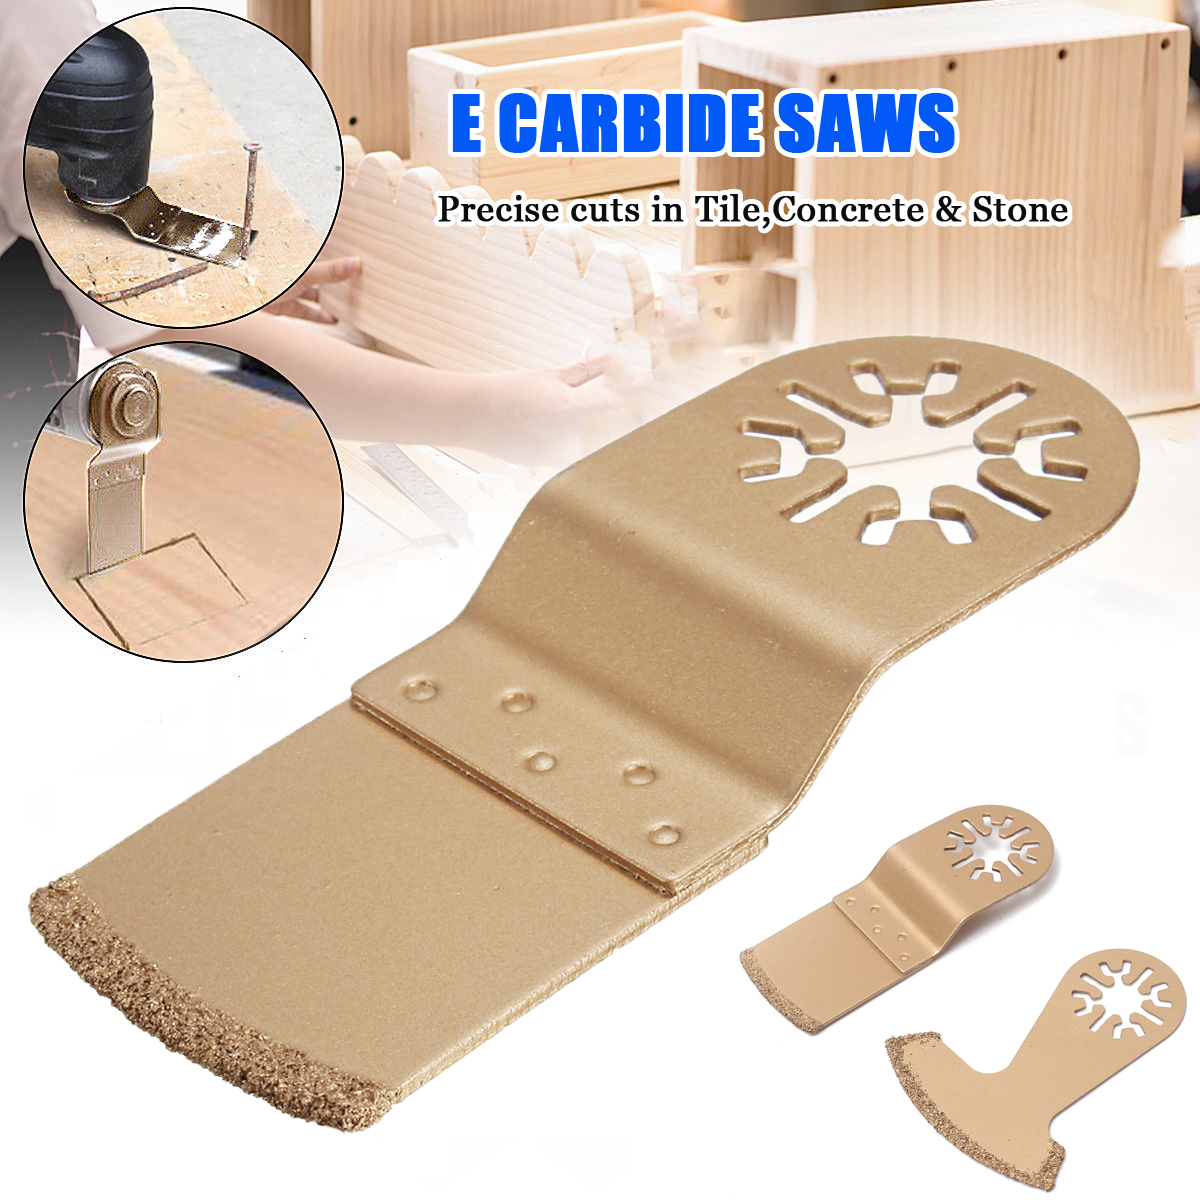 New Arrival 1pcs Diamond Carbide Oscillating MultiTool Saw Blade Fits Fein Multimaster Gold Metal Cutting Tool Wood Cutter